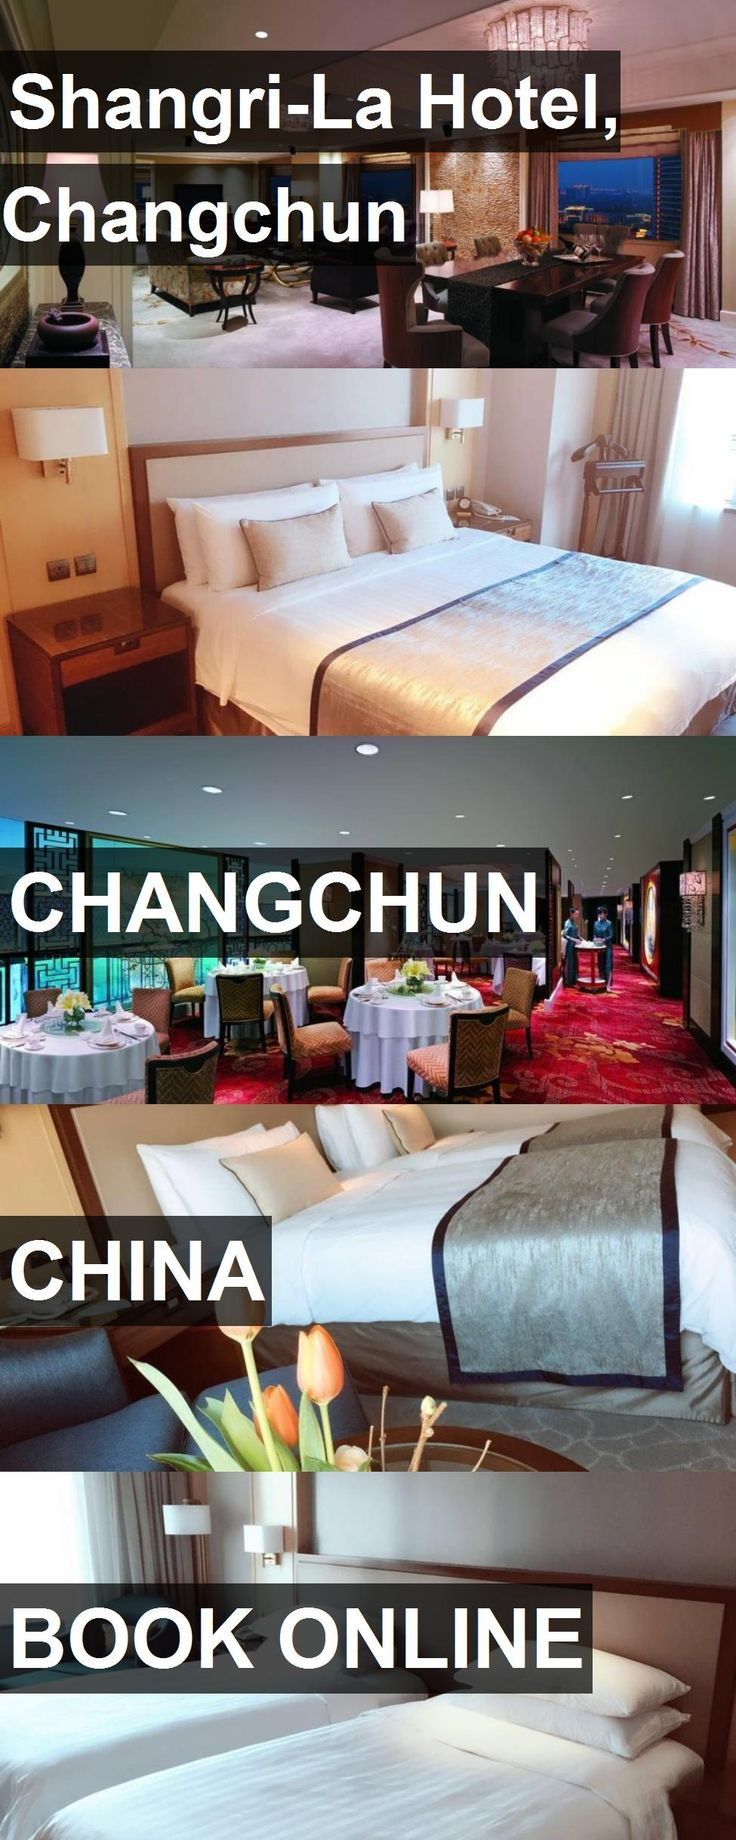 Hotel Shangri-La Hotel, Changchun in Changchun, China. For more information, photos, reviews and best prices please follow the link. #China #Changchun #Shangri-LaHotel,Changchun #hotel #travel #vacation